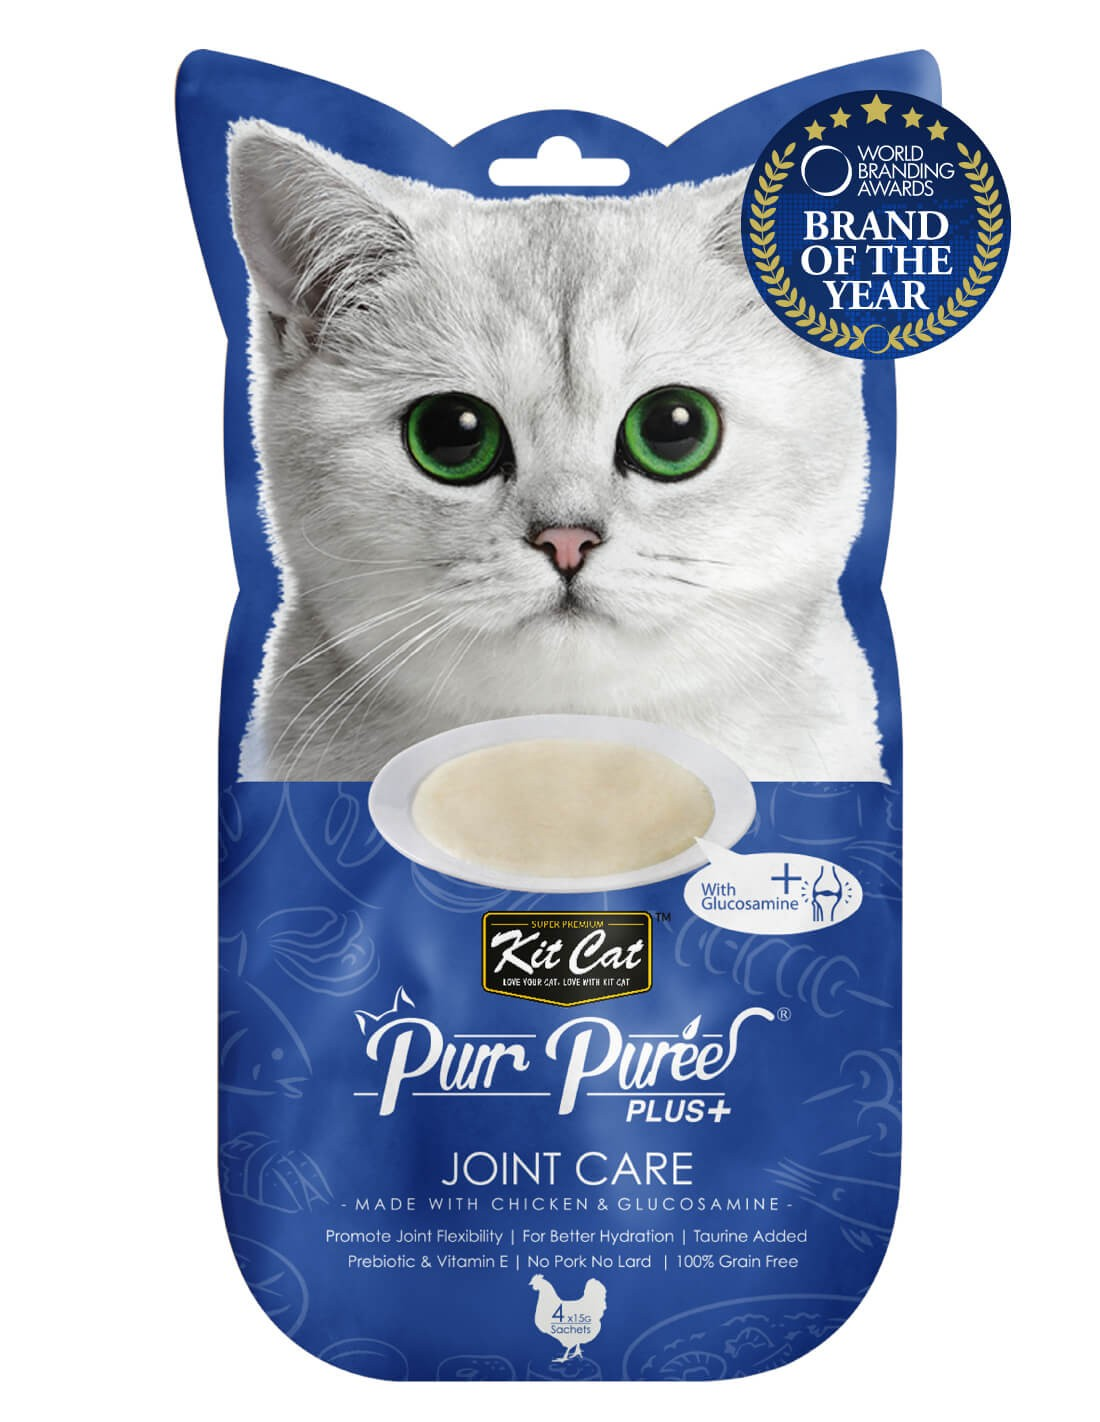 KIT CAT PurrPuree Pollo y Glucosamina - Joint Care 60g